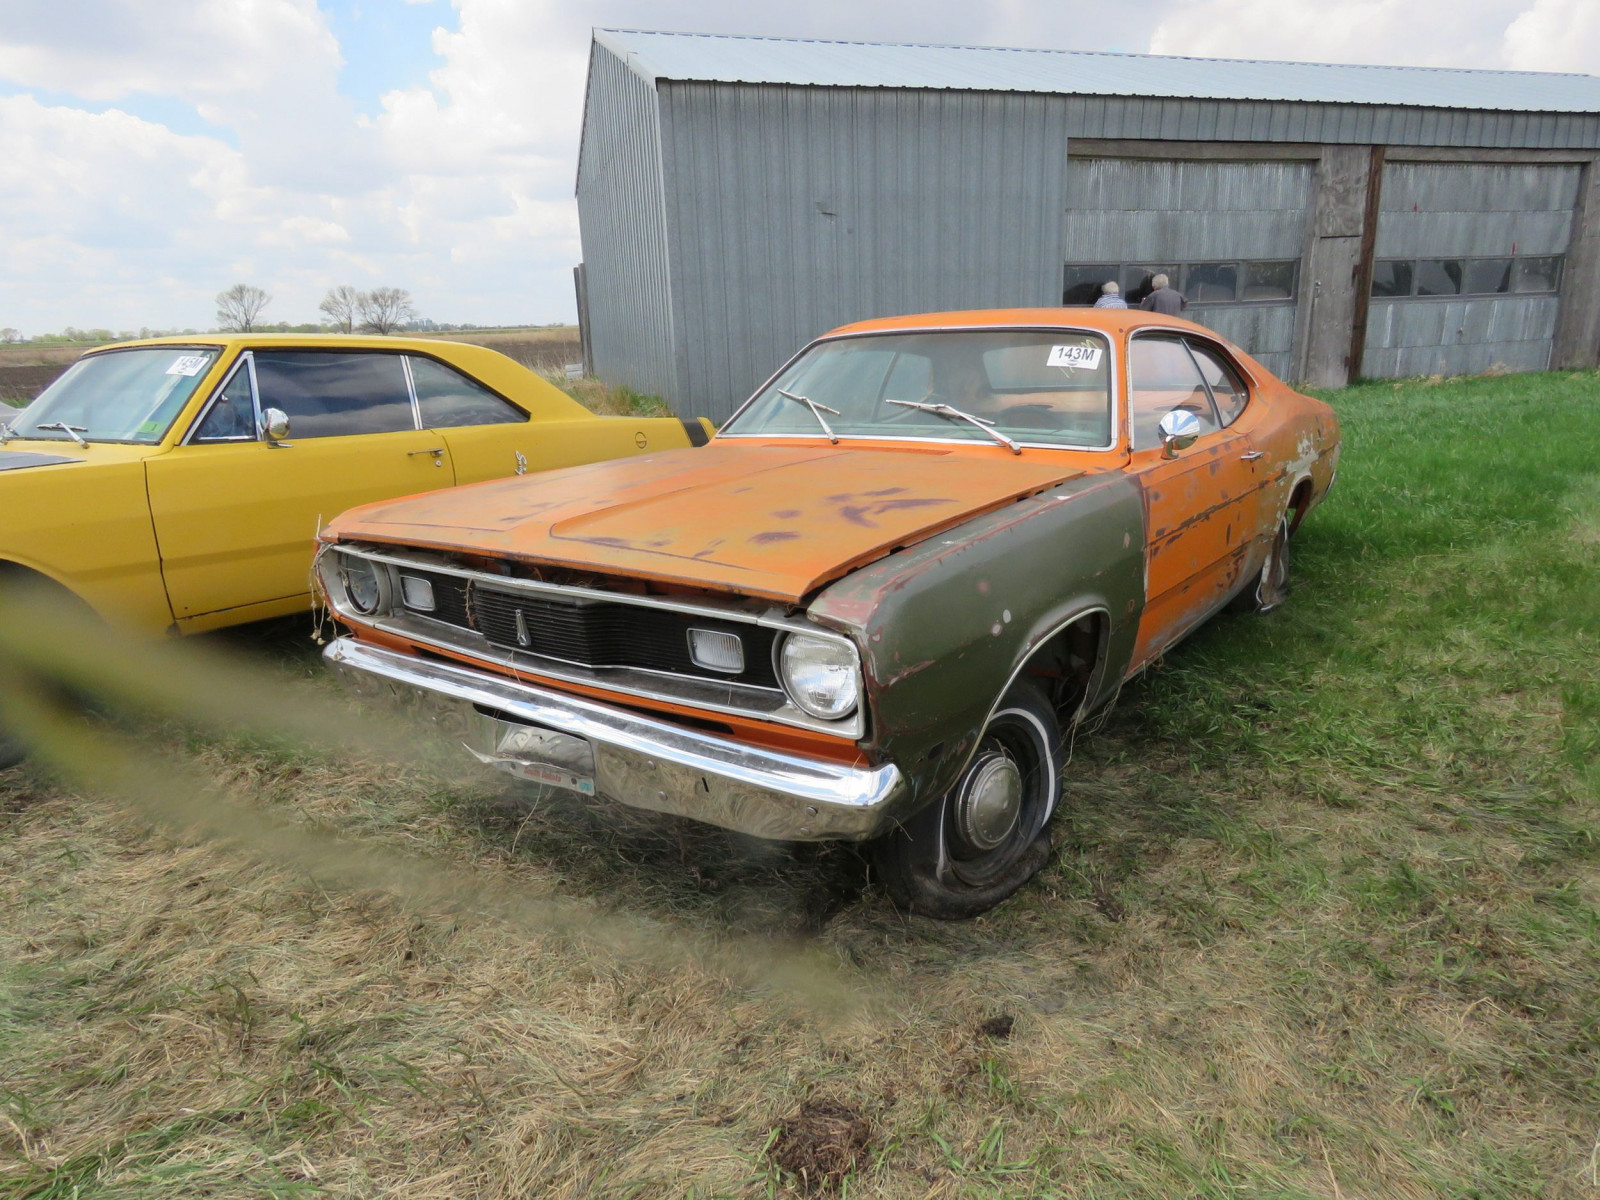 1970 Plymouth Duster Coupe - Image 1